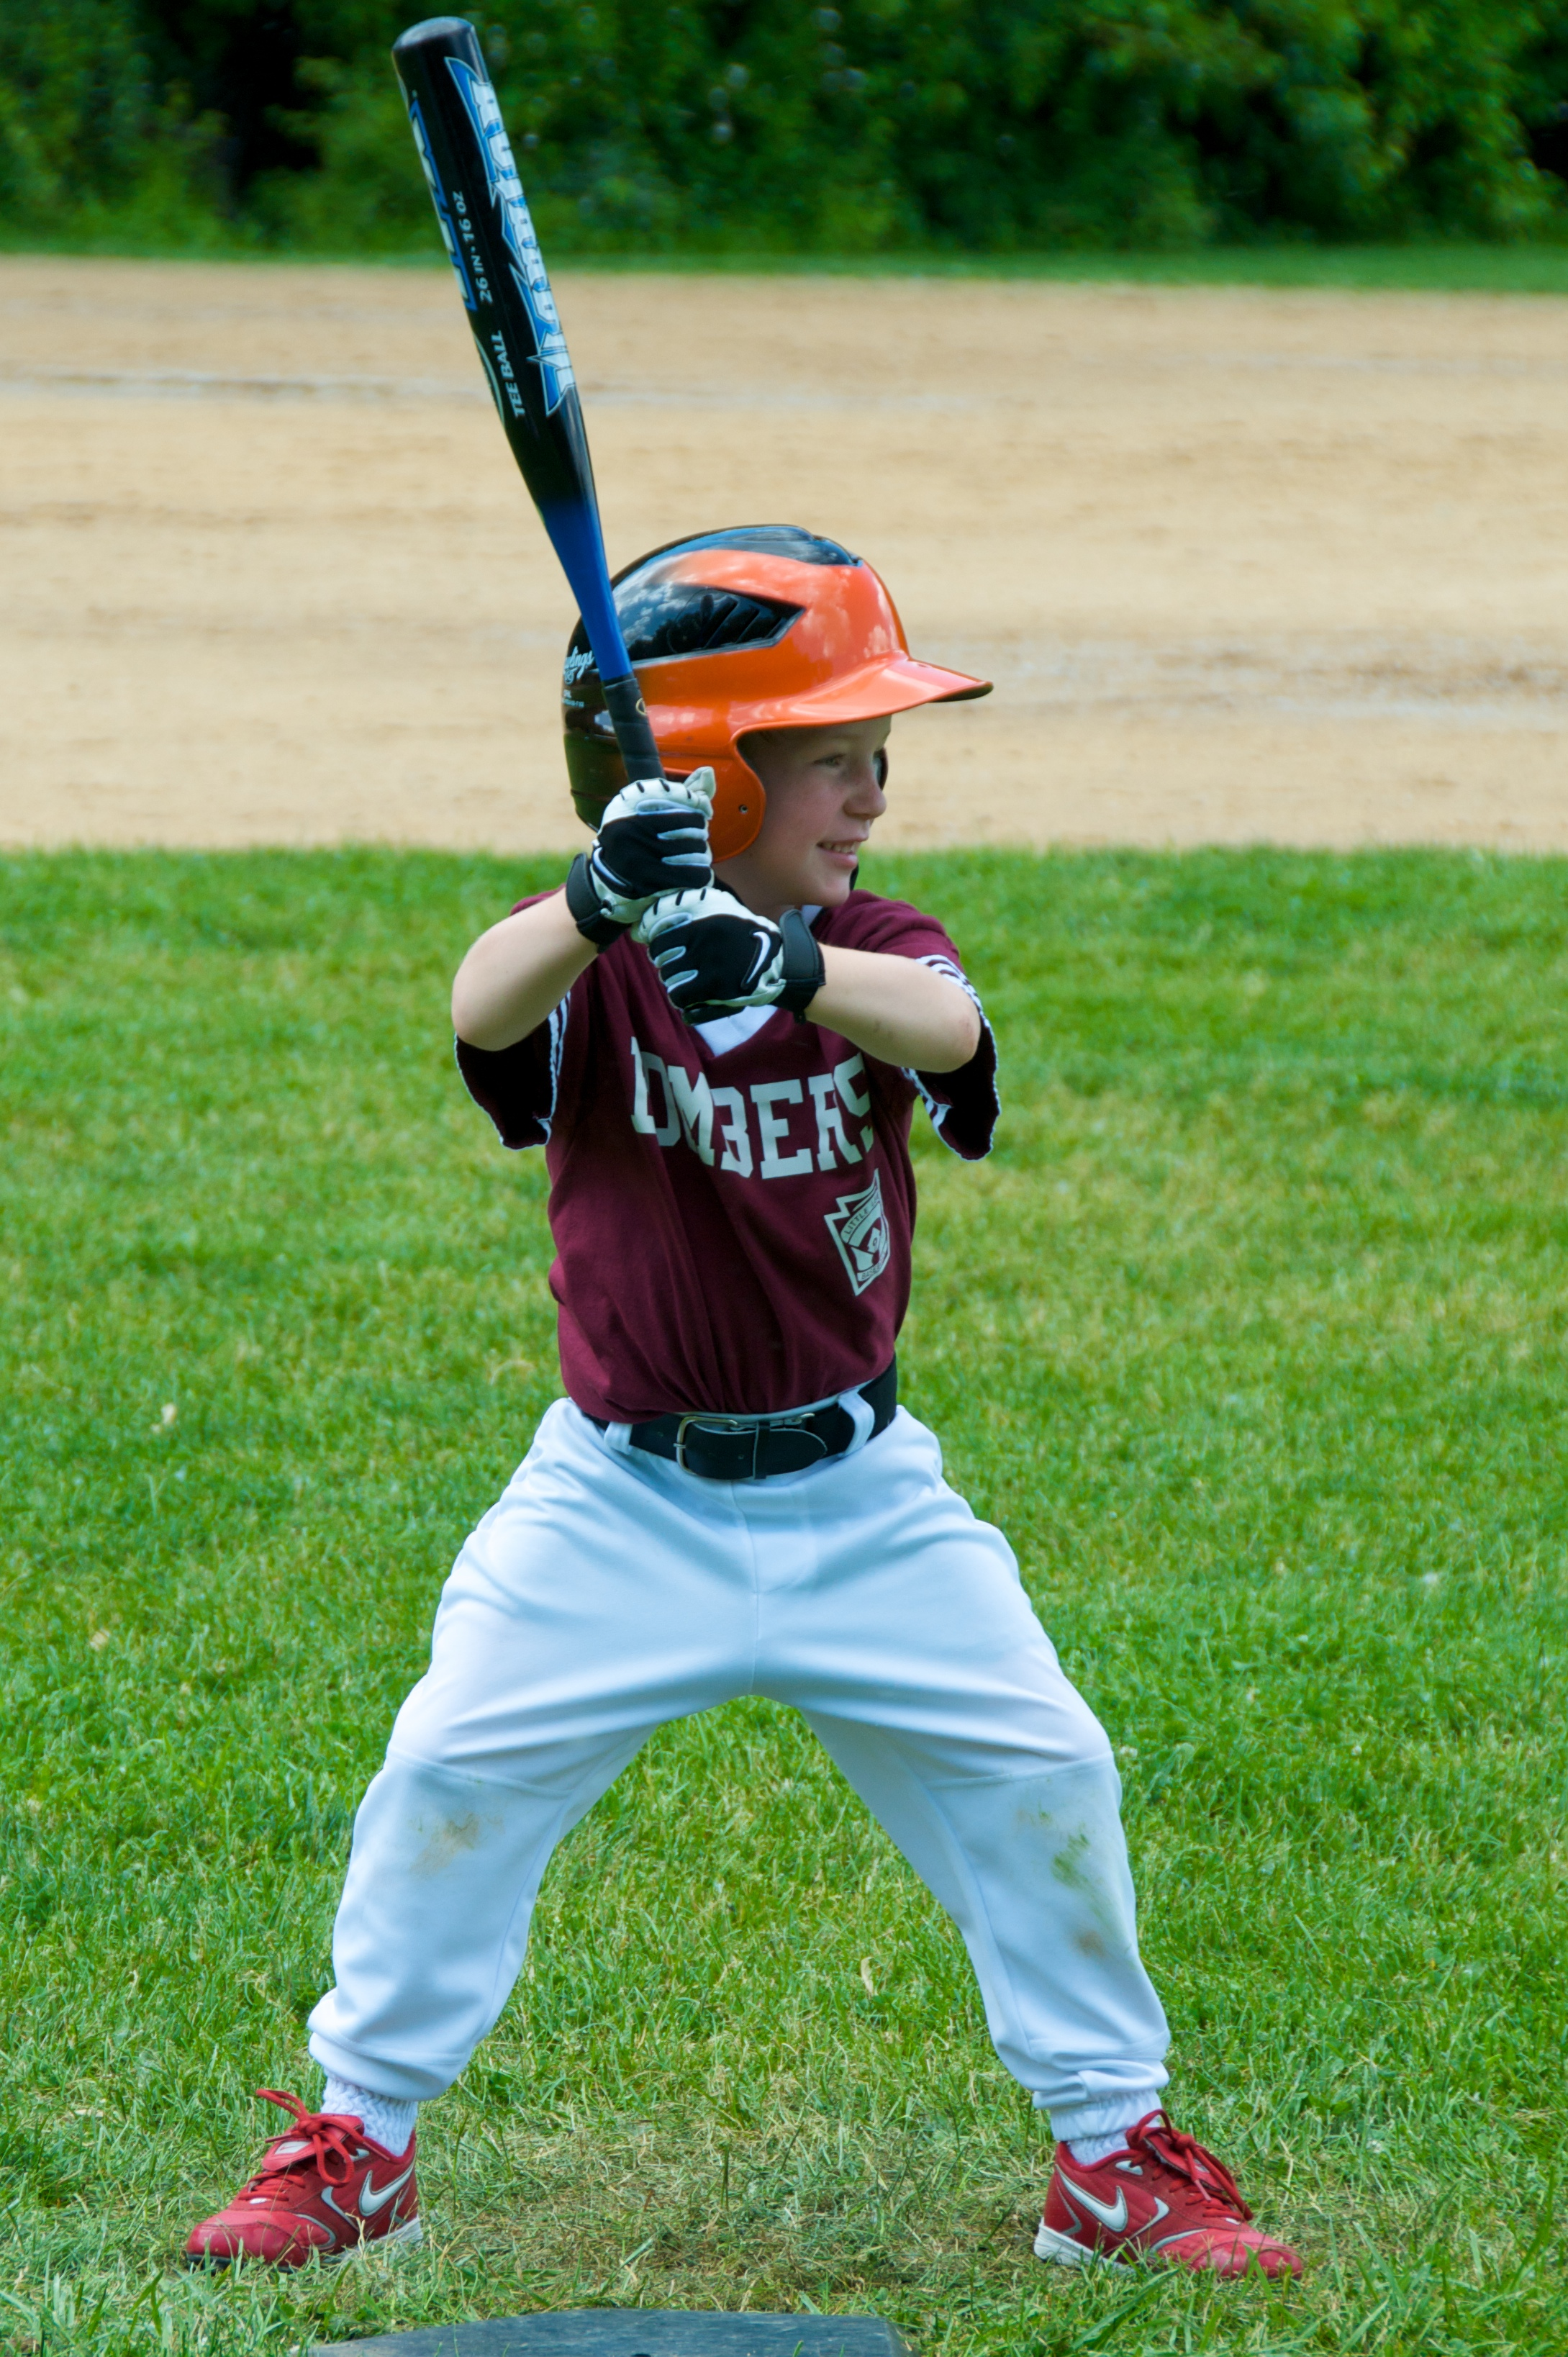 By Ed Yourdon - Flickr: LIttle League baseball, May 2009 - 09, CC BY-SA 2.0, https://commons.wikimedia.org/w/index.php?curid=16217900